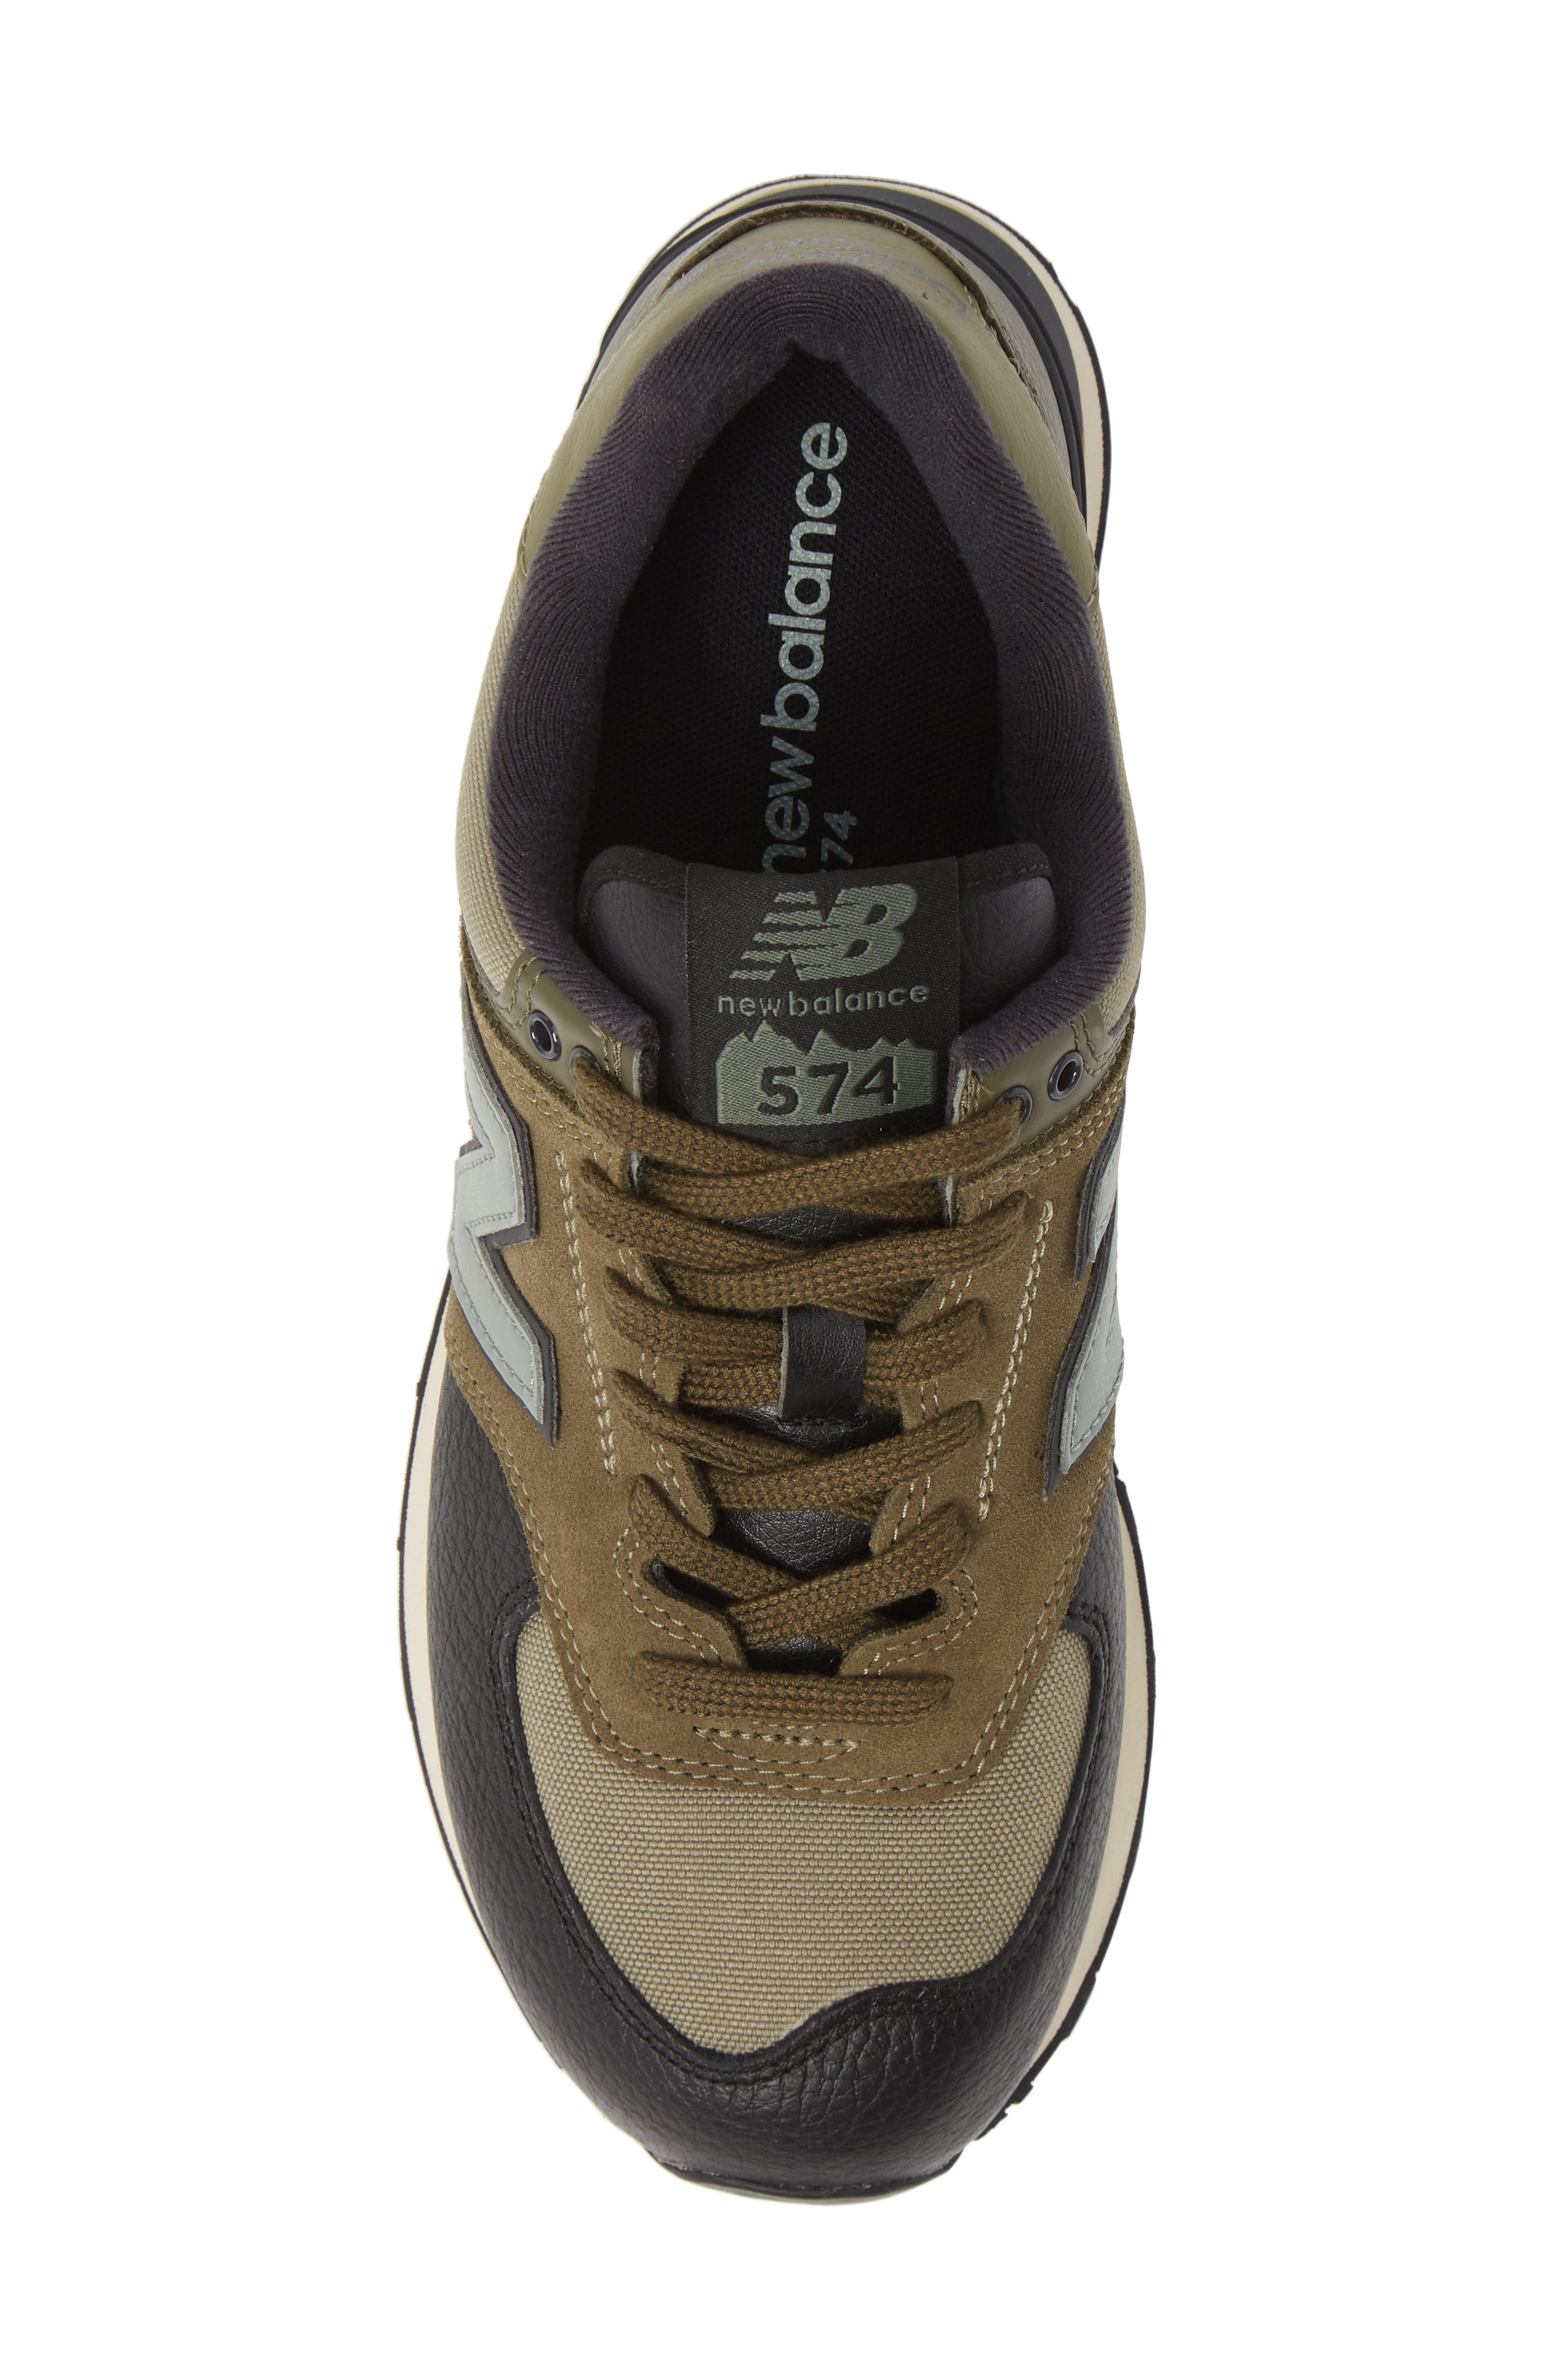 574 Classic Sneaker,                             Alternate thumbnail 5, color,                             COVERT GREEN SUEDE/ TEXTILE